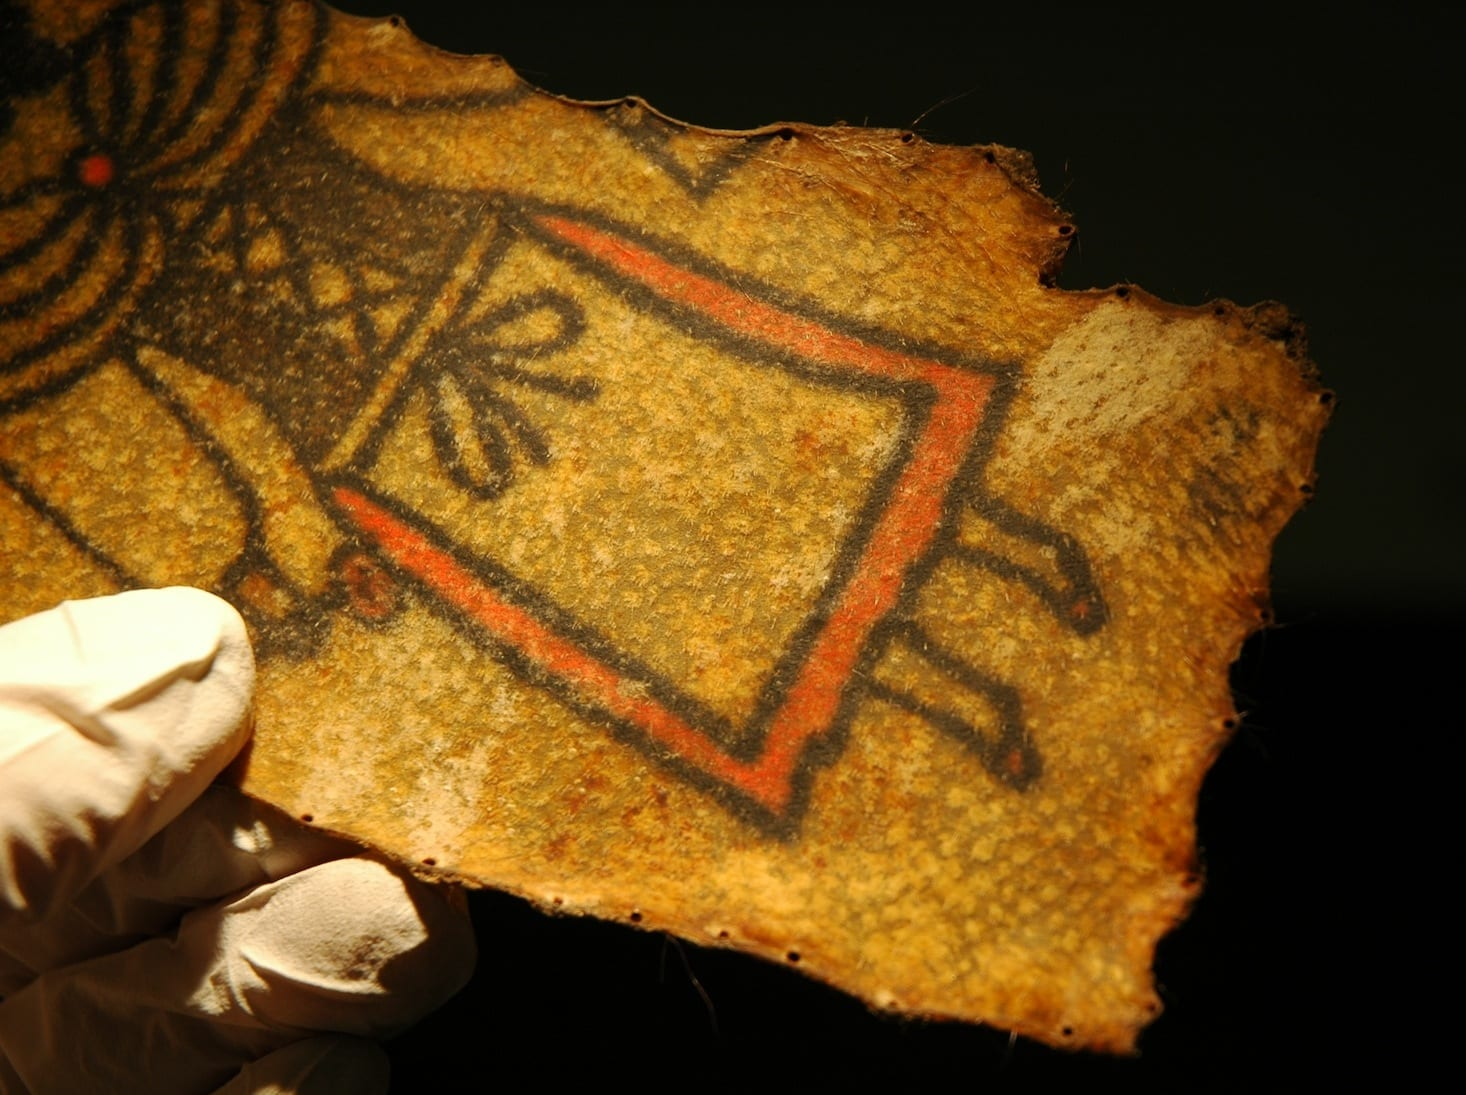 Preserved Tattooed Skin Ucl Researchers In Museums